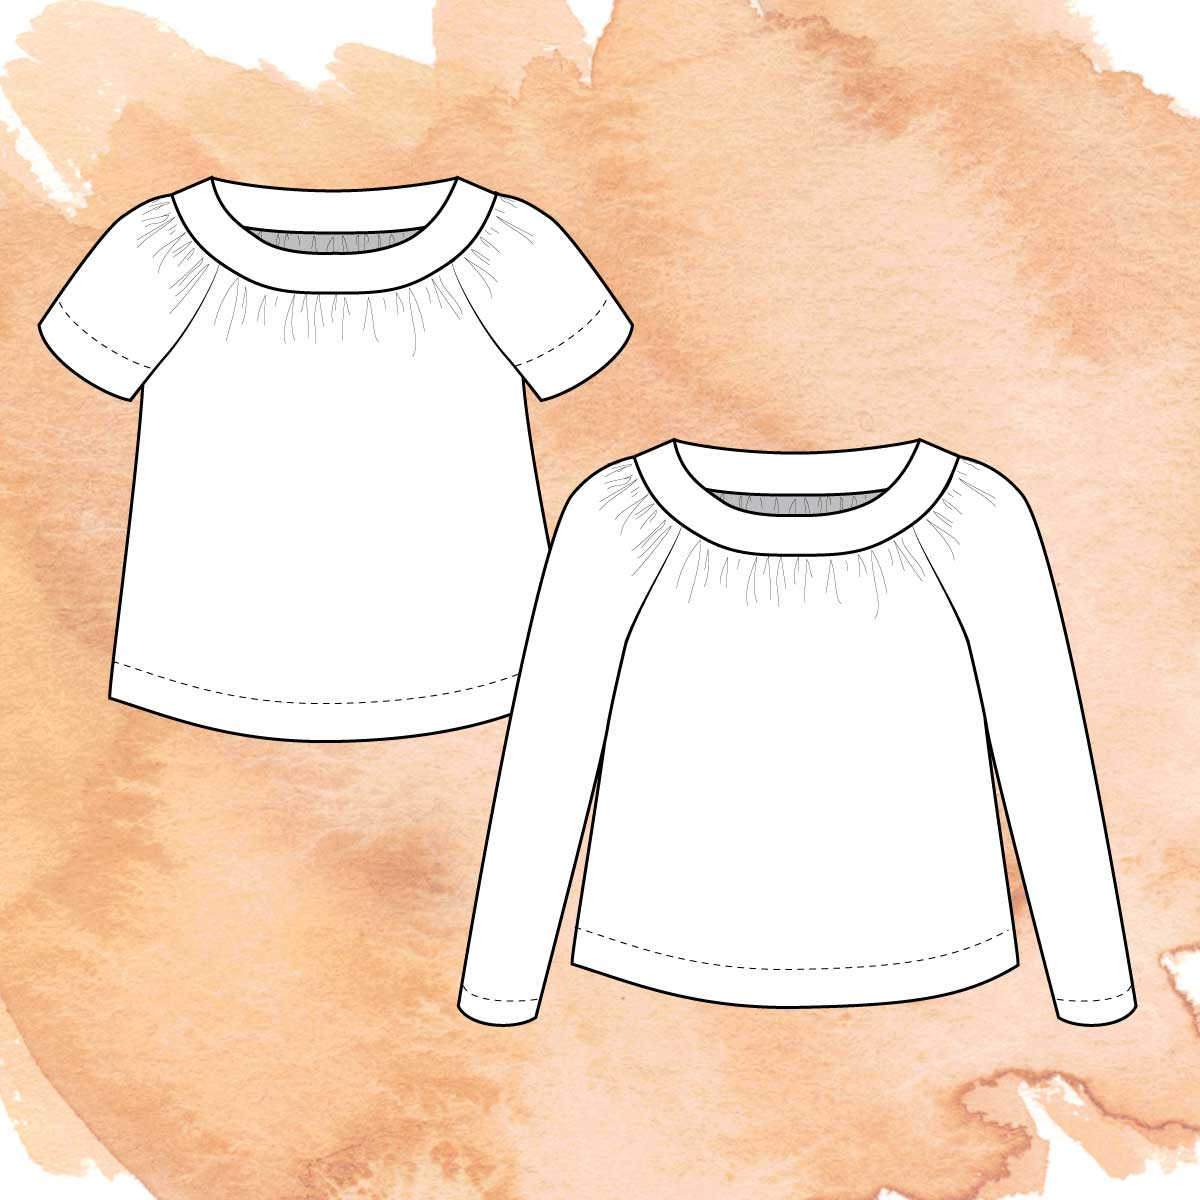 Illustration of the two views of Crodyline - short and long sleeve tops.